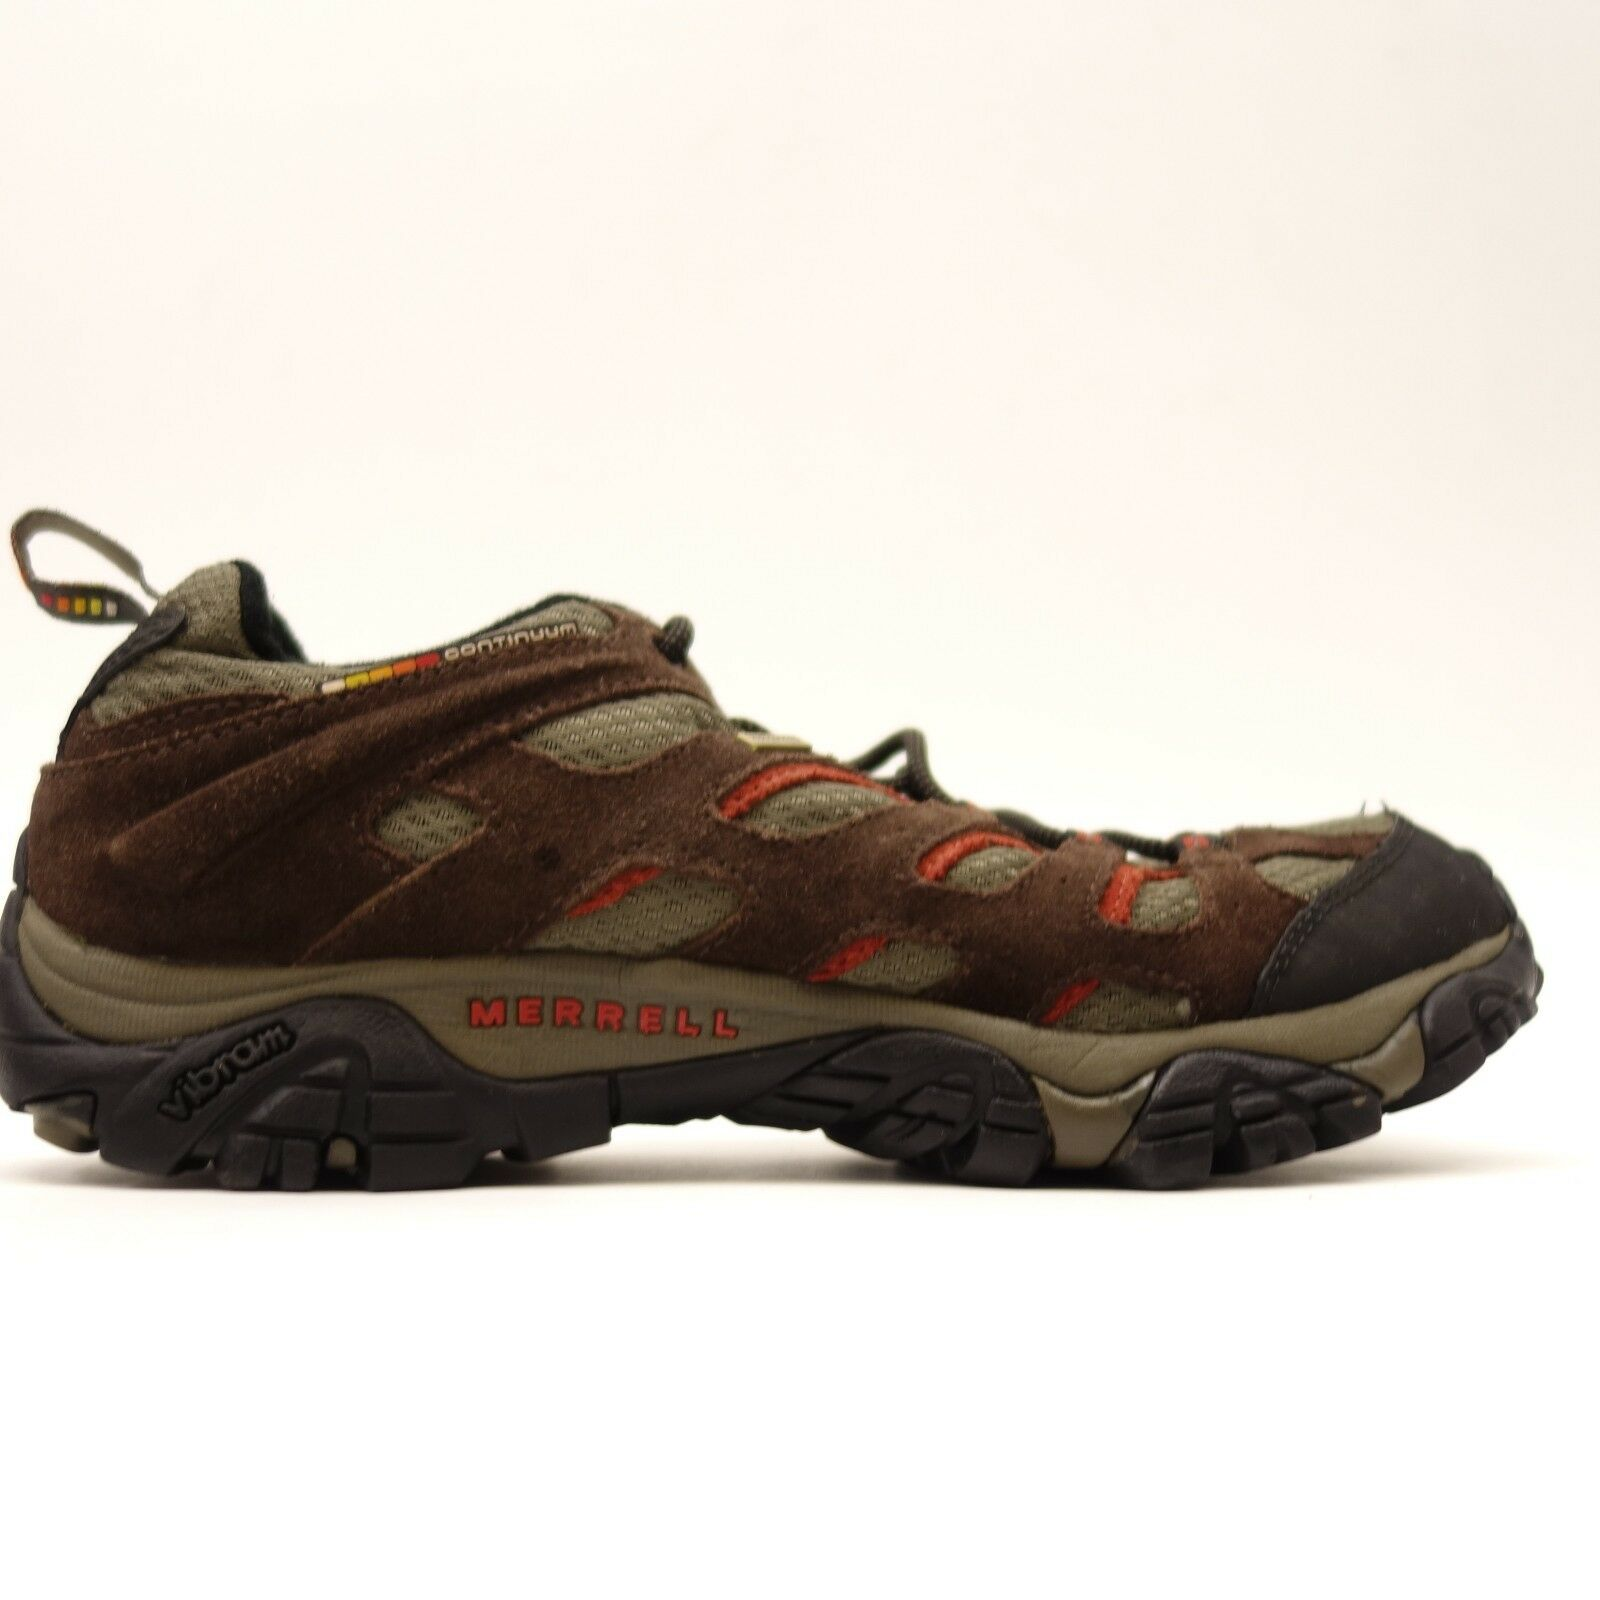 Merrell Mens Moab Low Waterproof Athletic Support Hiking Trail shoes Size 9.5